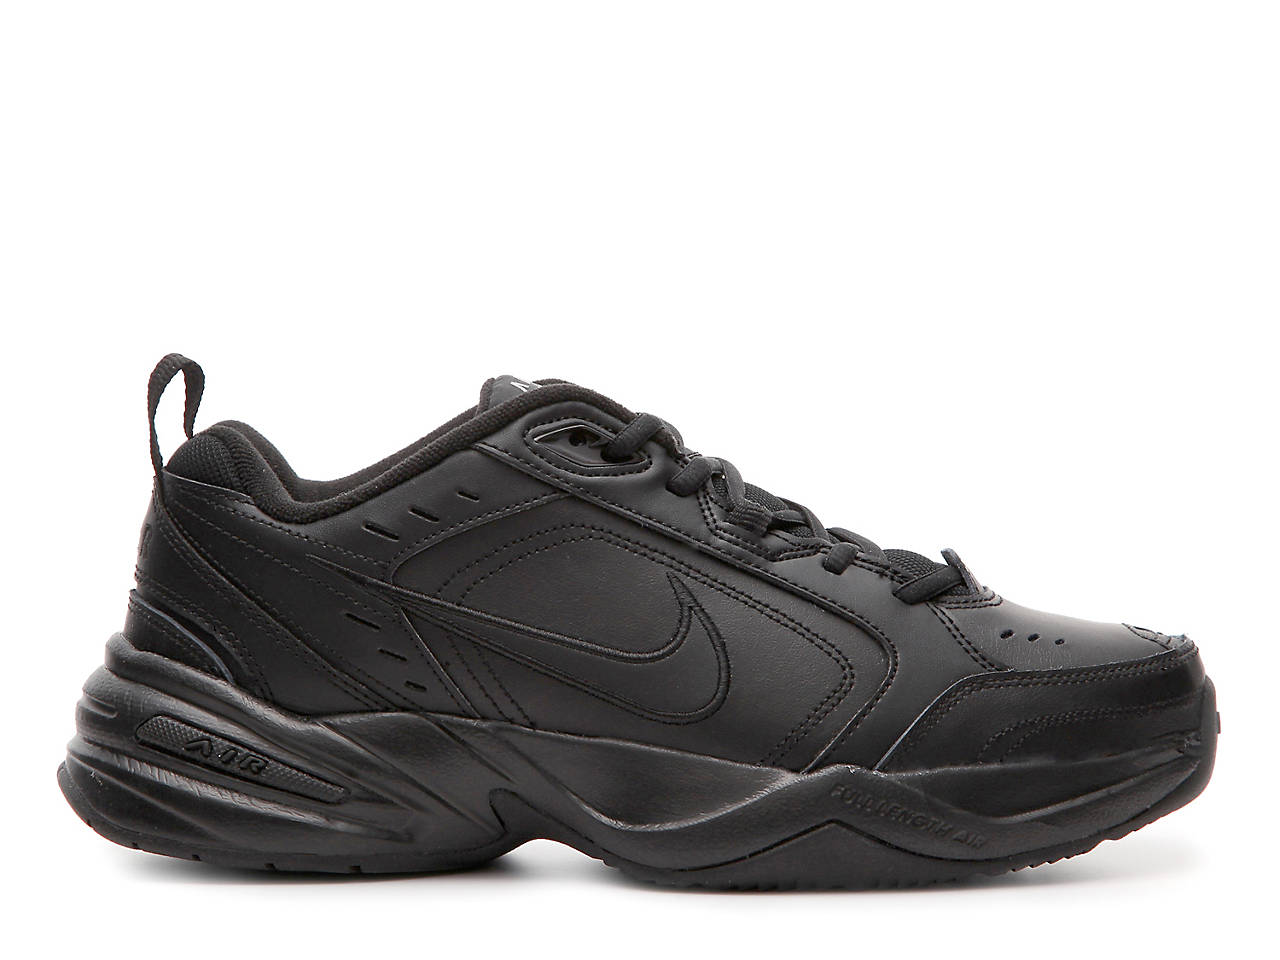 buy online c67ca 963c1 Nike. Air Monarch IV Training Shoe - Men s